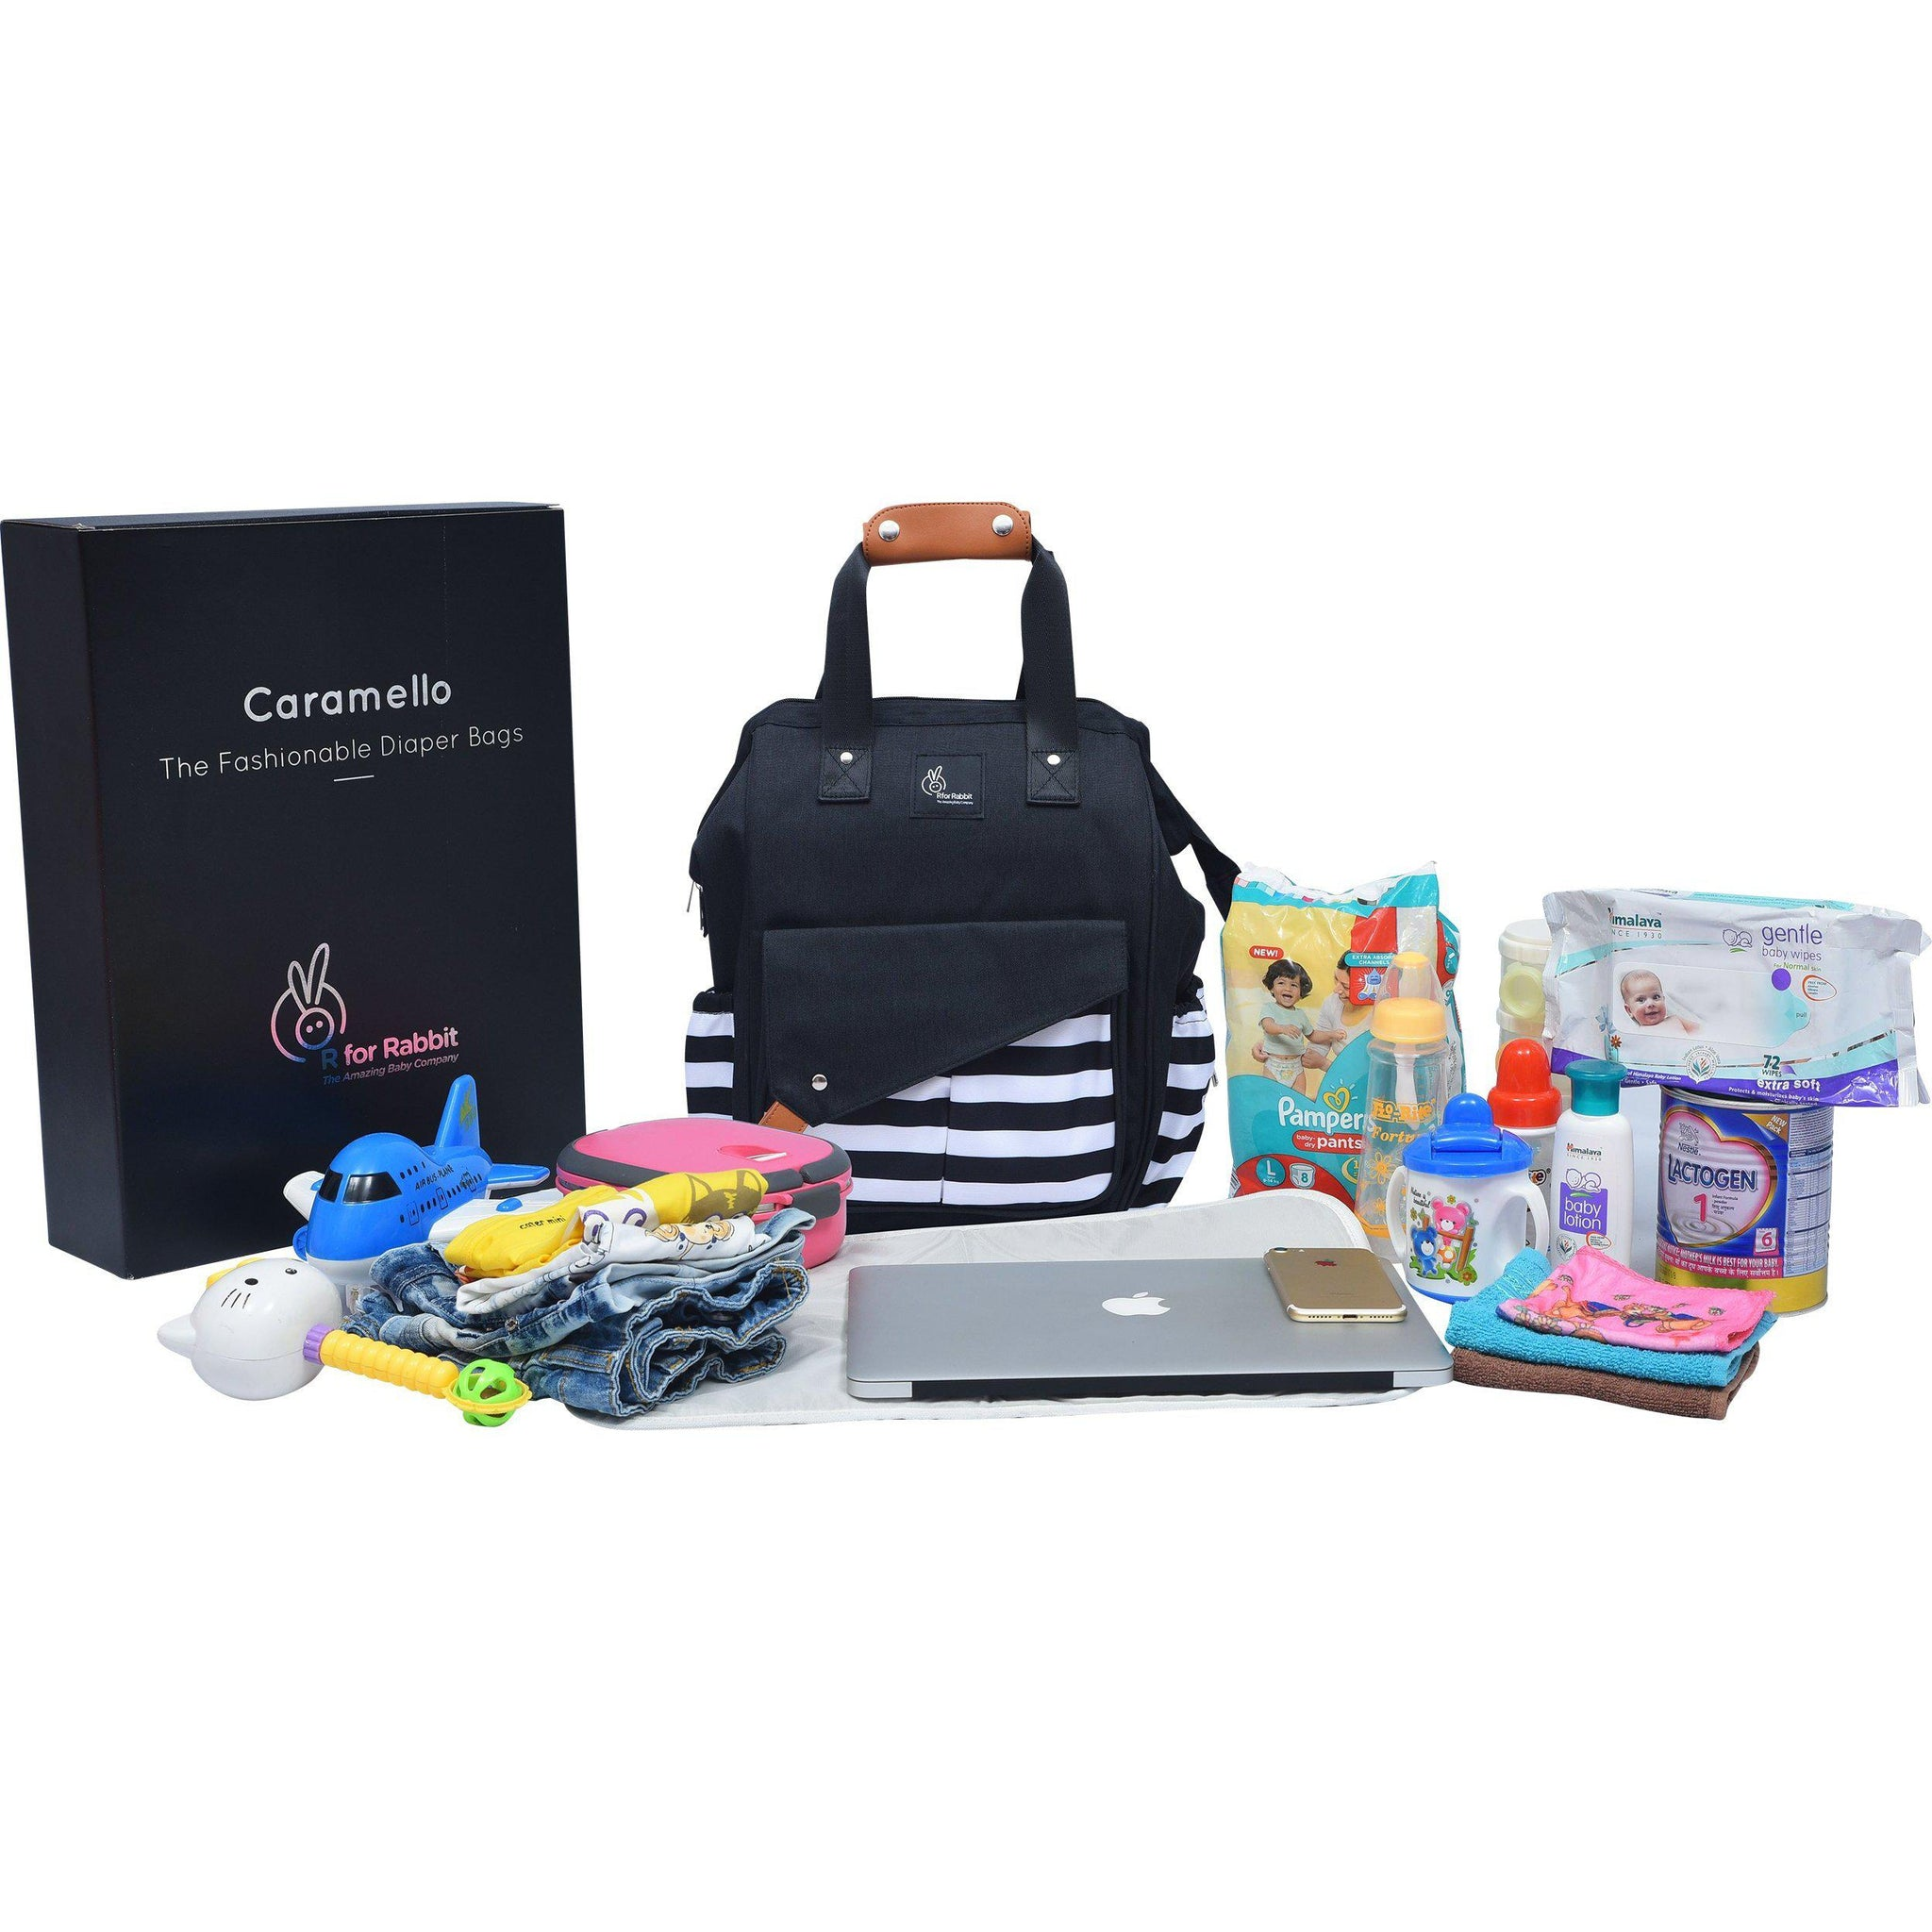 R for Rabbit Caramello Delight Diaper Bags- Smart and Fashionable Diaper Bag for Moms